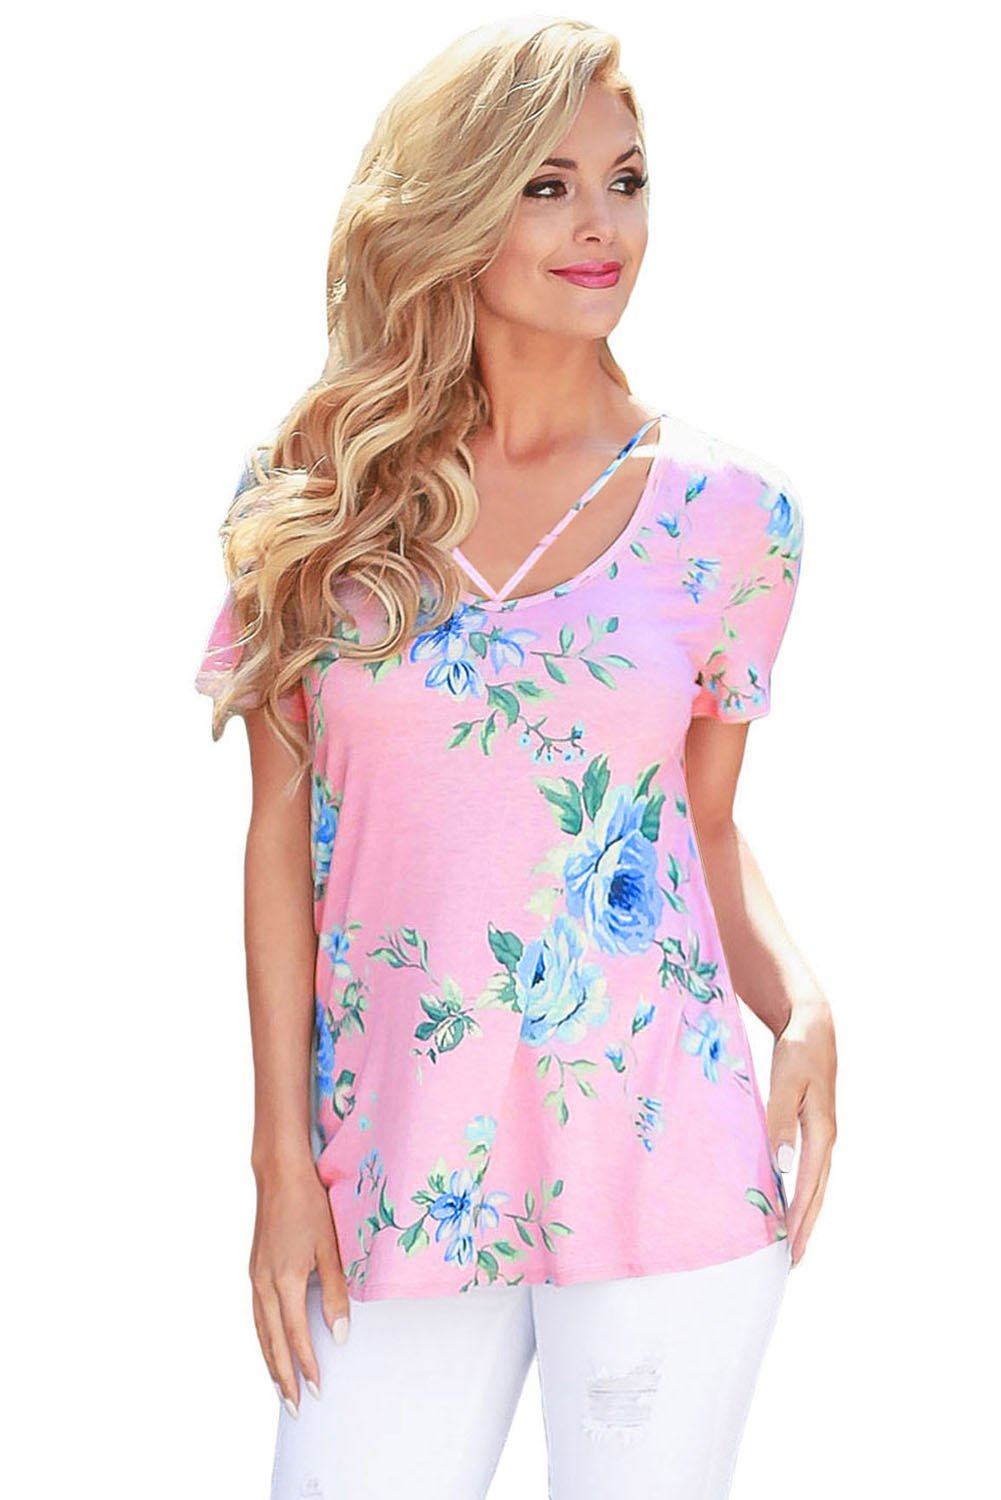 Strappy Neck Detail Pink Floral Short Sleeve T-shirt